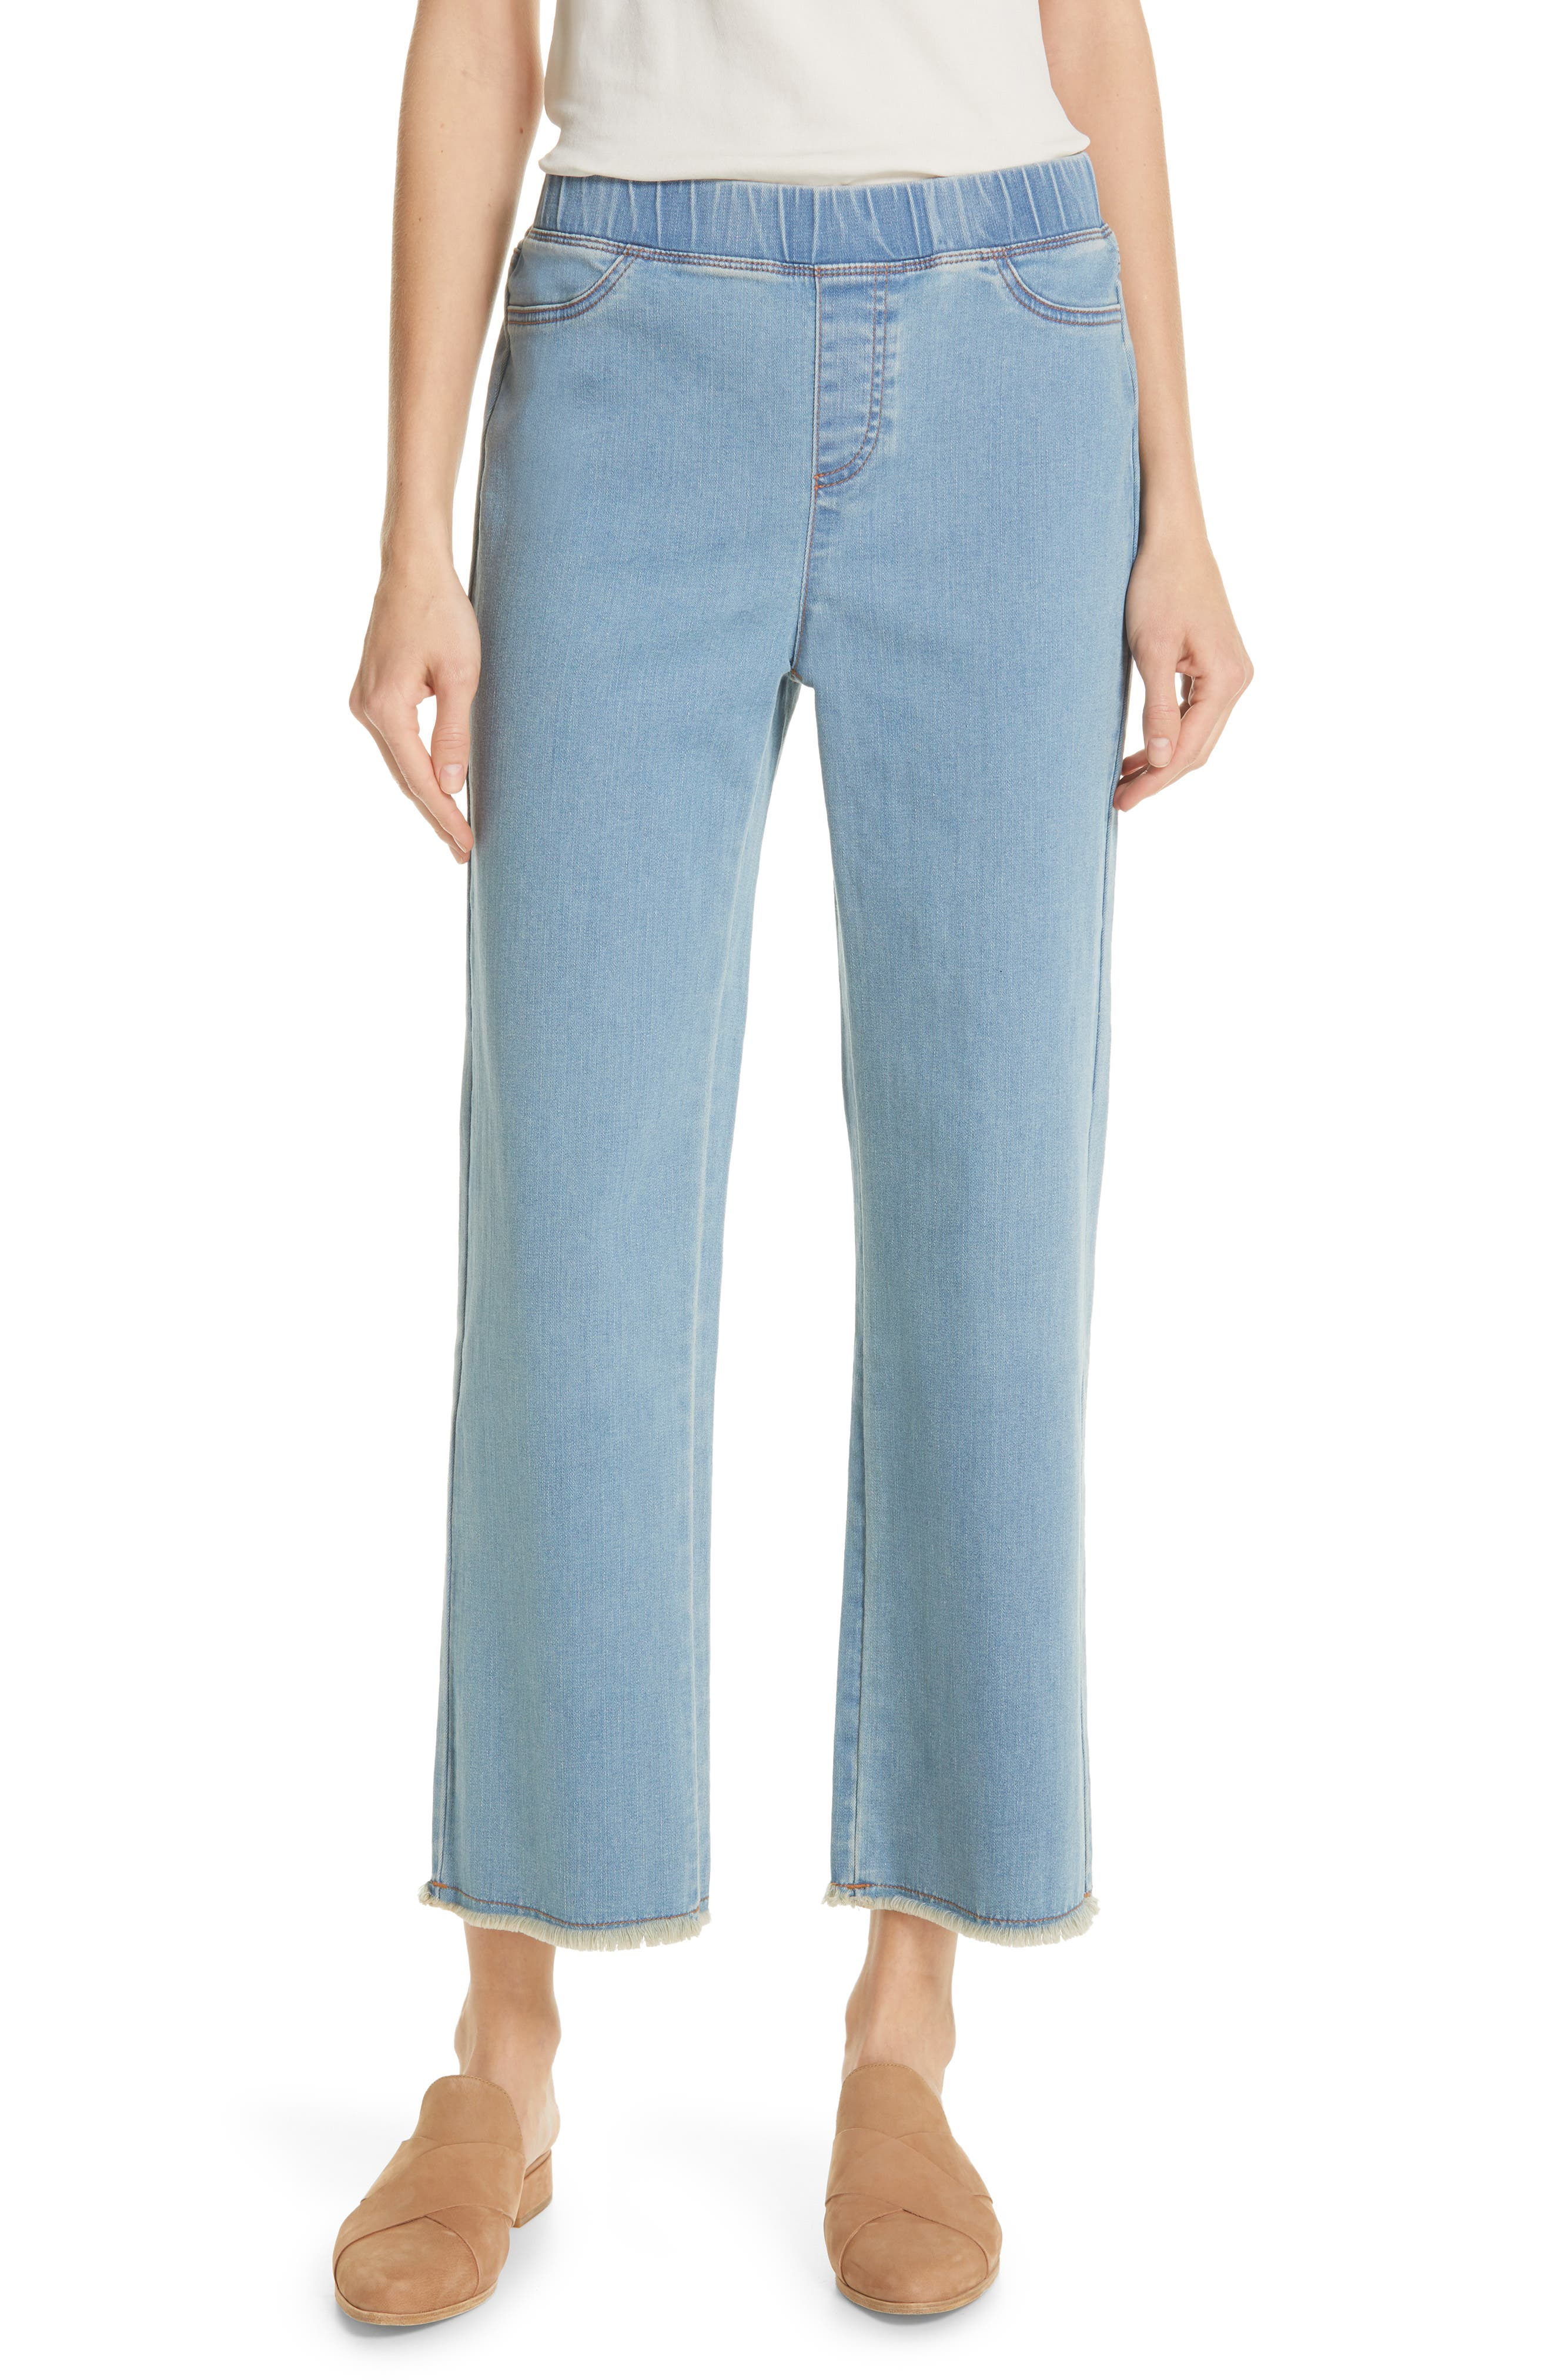 EILEEN FISHER, Frayed Hem Pull-On Ankle Jeans, Main thumbnail 1, color, FROST